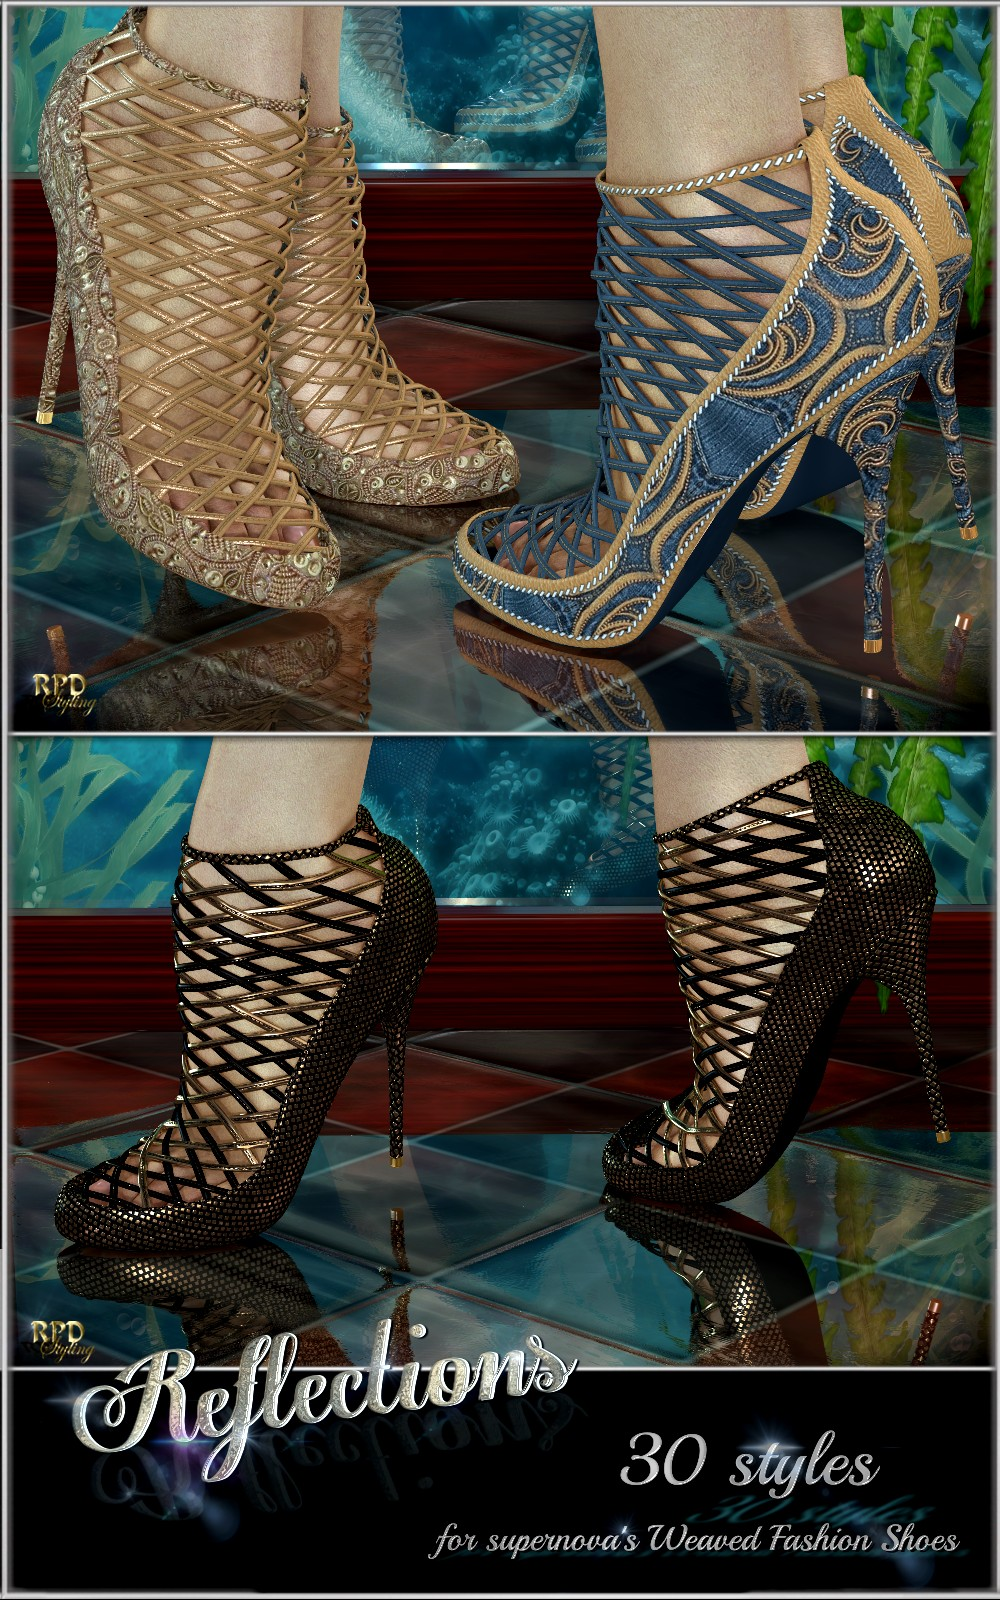 Woven Fashion Shoes - Reflectionsbyrenapd()